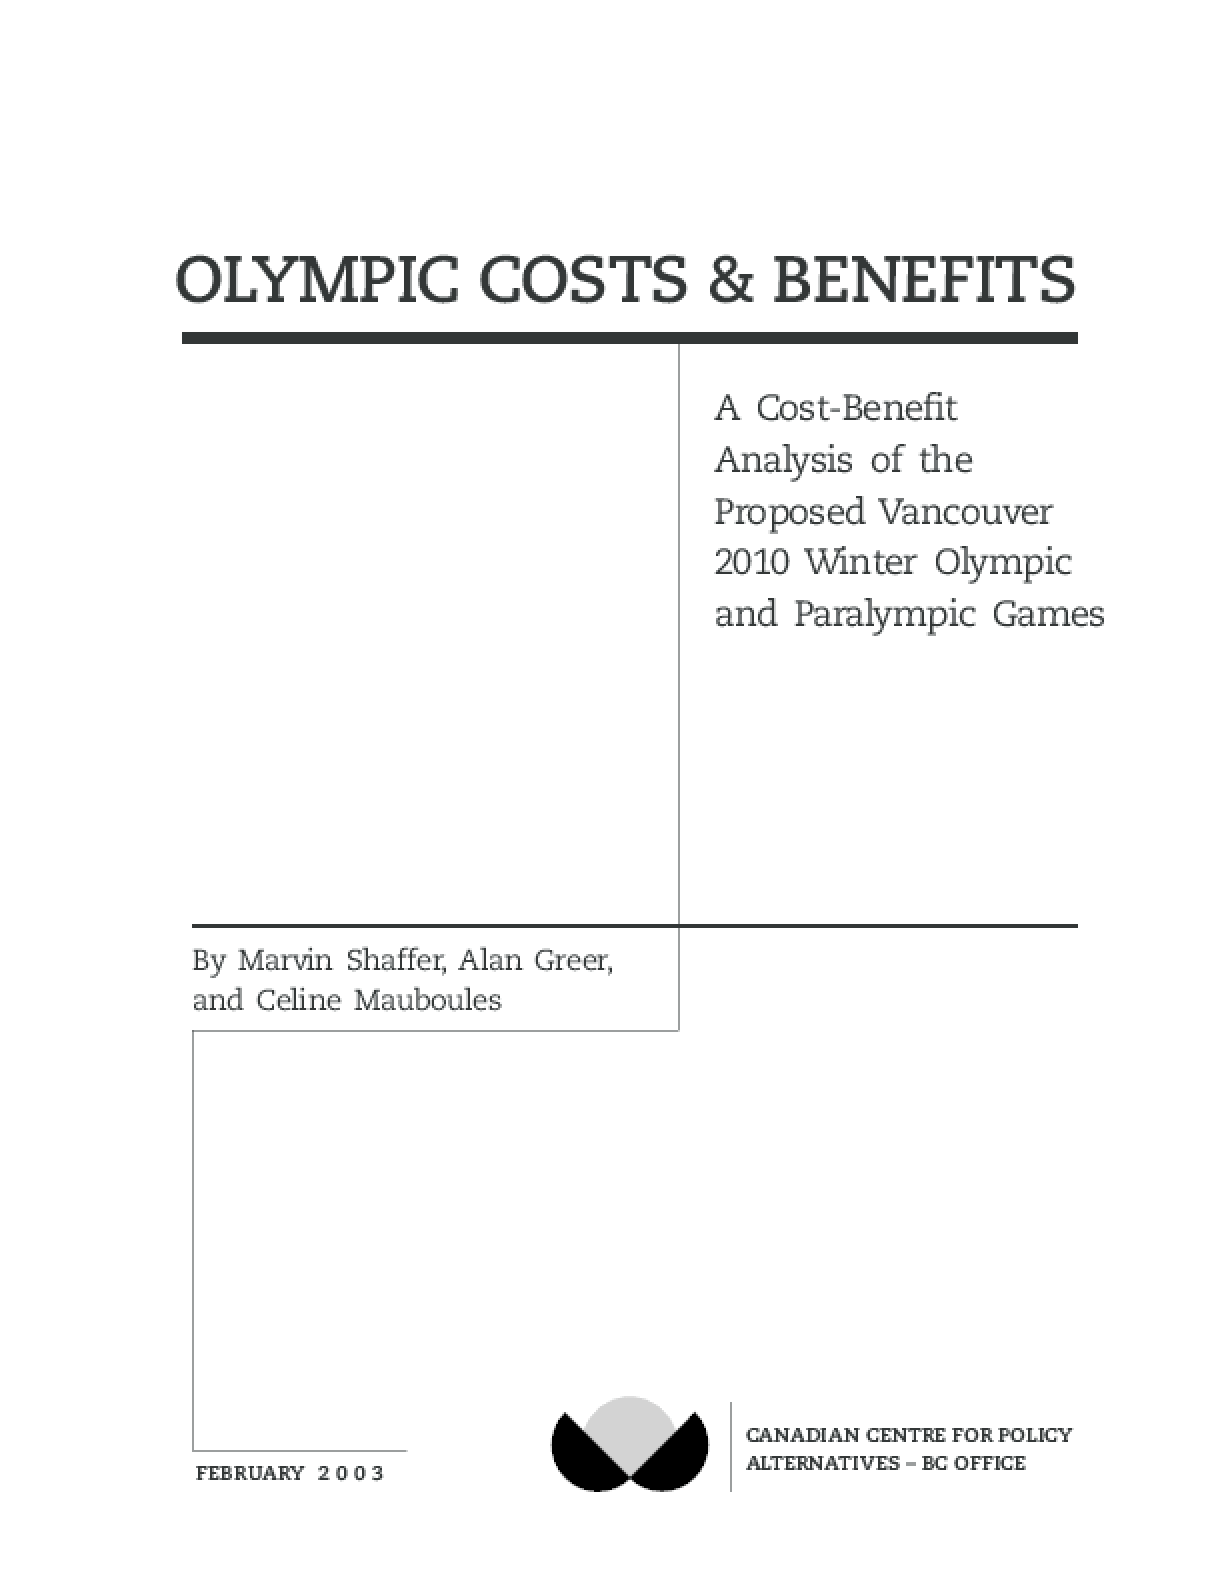 2010 Olympic Costs and Benefits